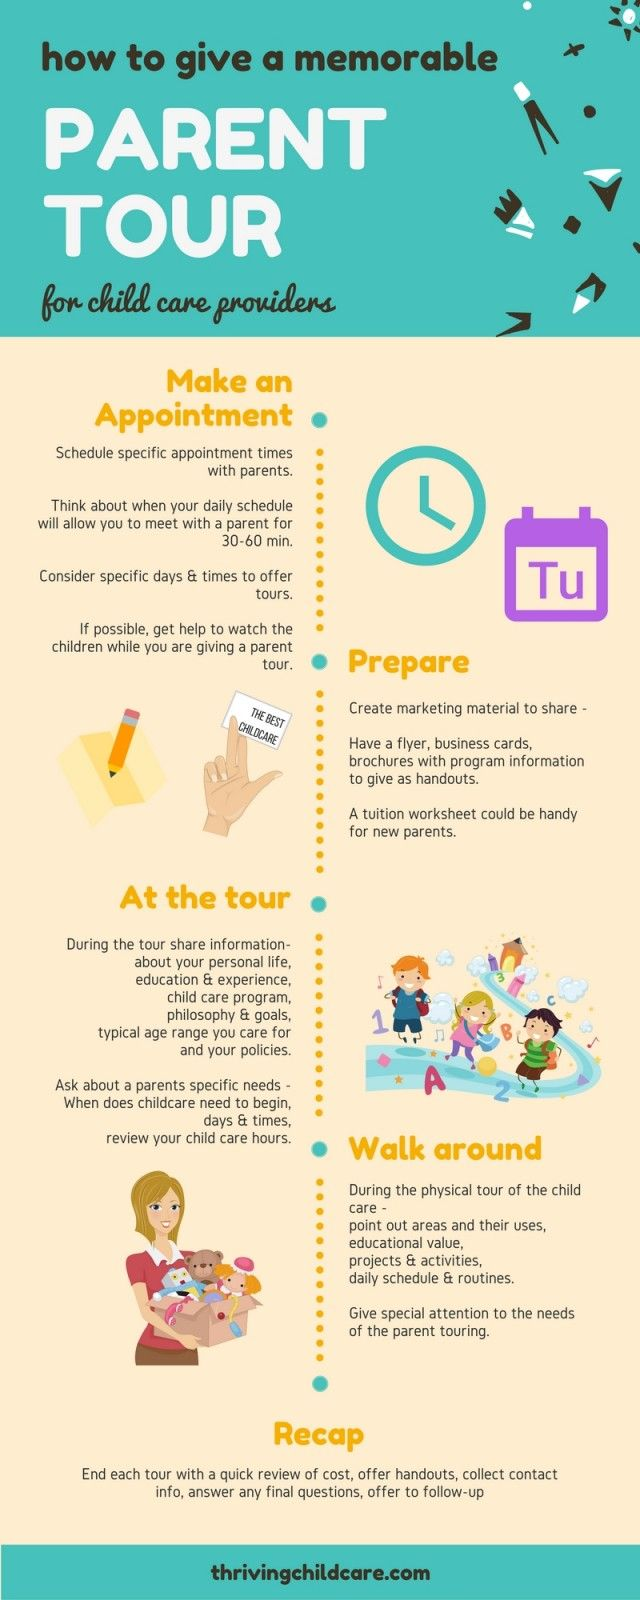 How To Give A Parent Tour INFOGRAPHIC Thrivingchildcare